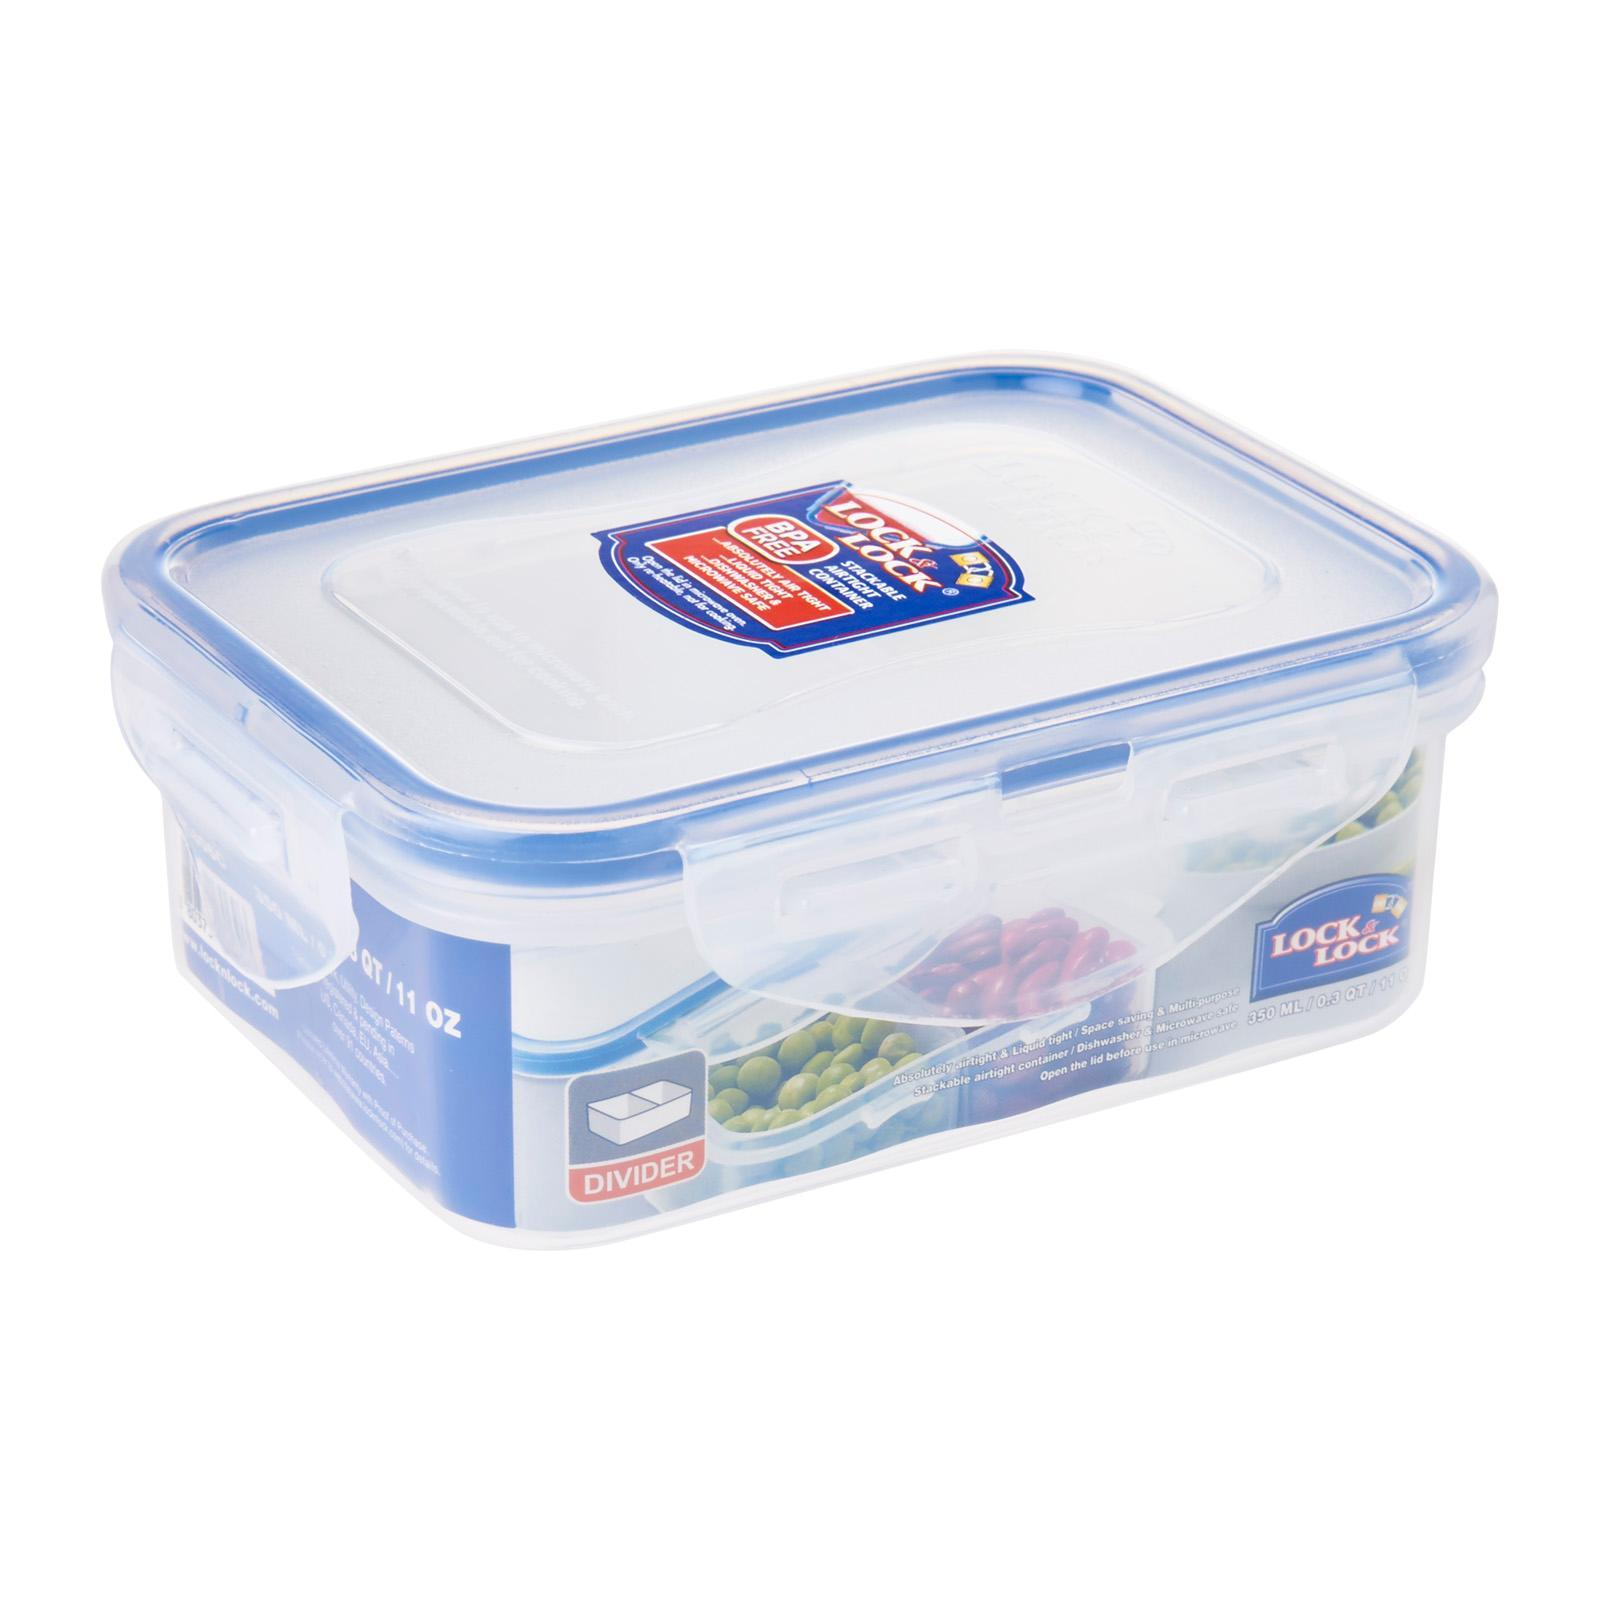 Lock & Lock Classic Food Container With Divider 350ml